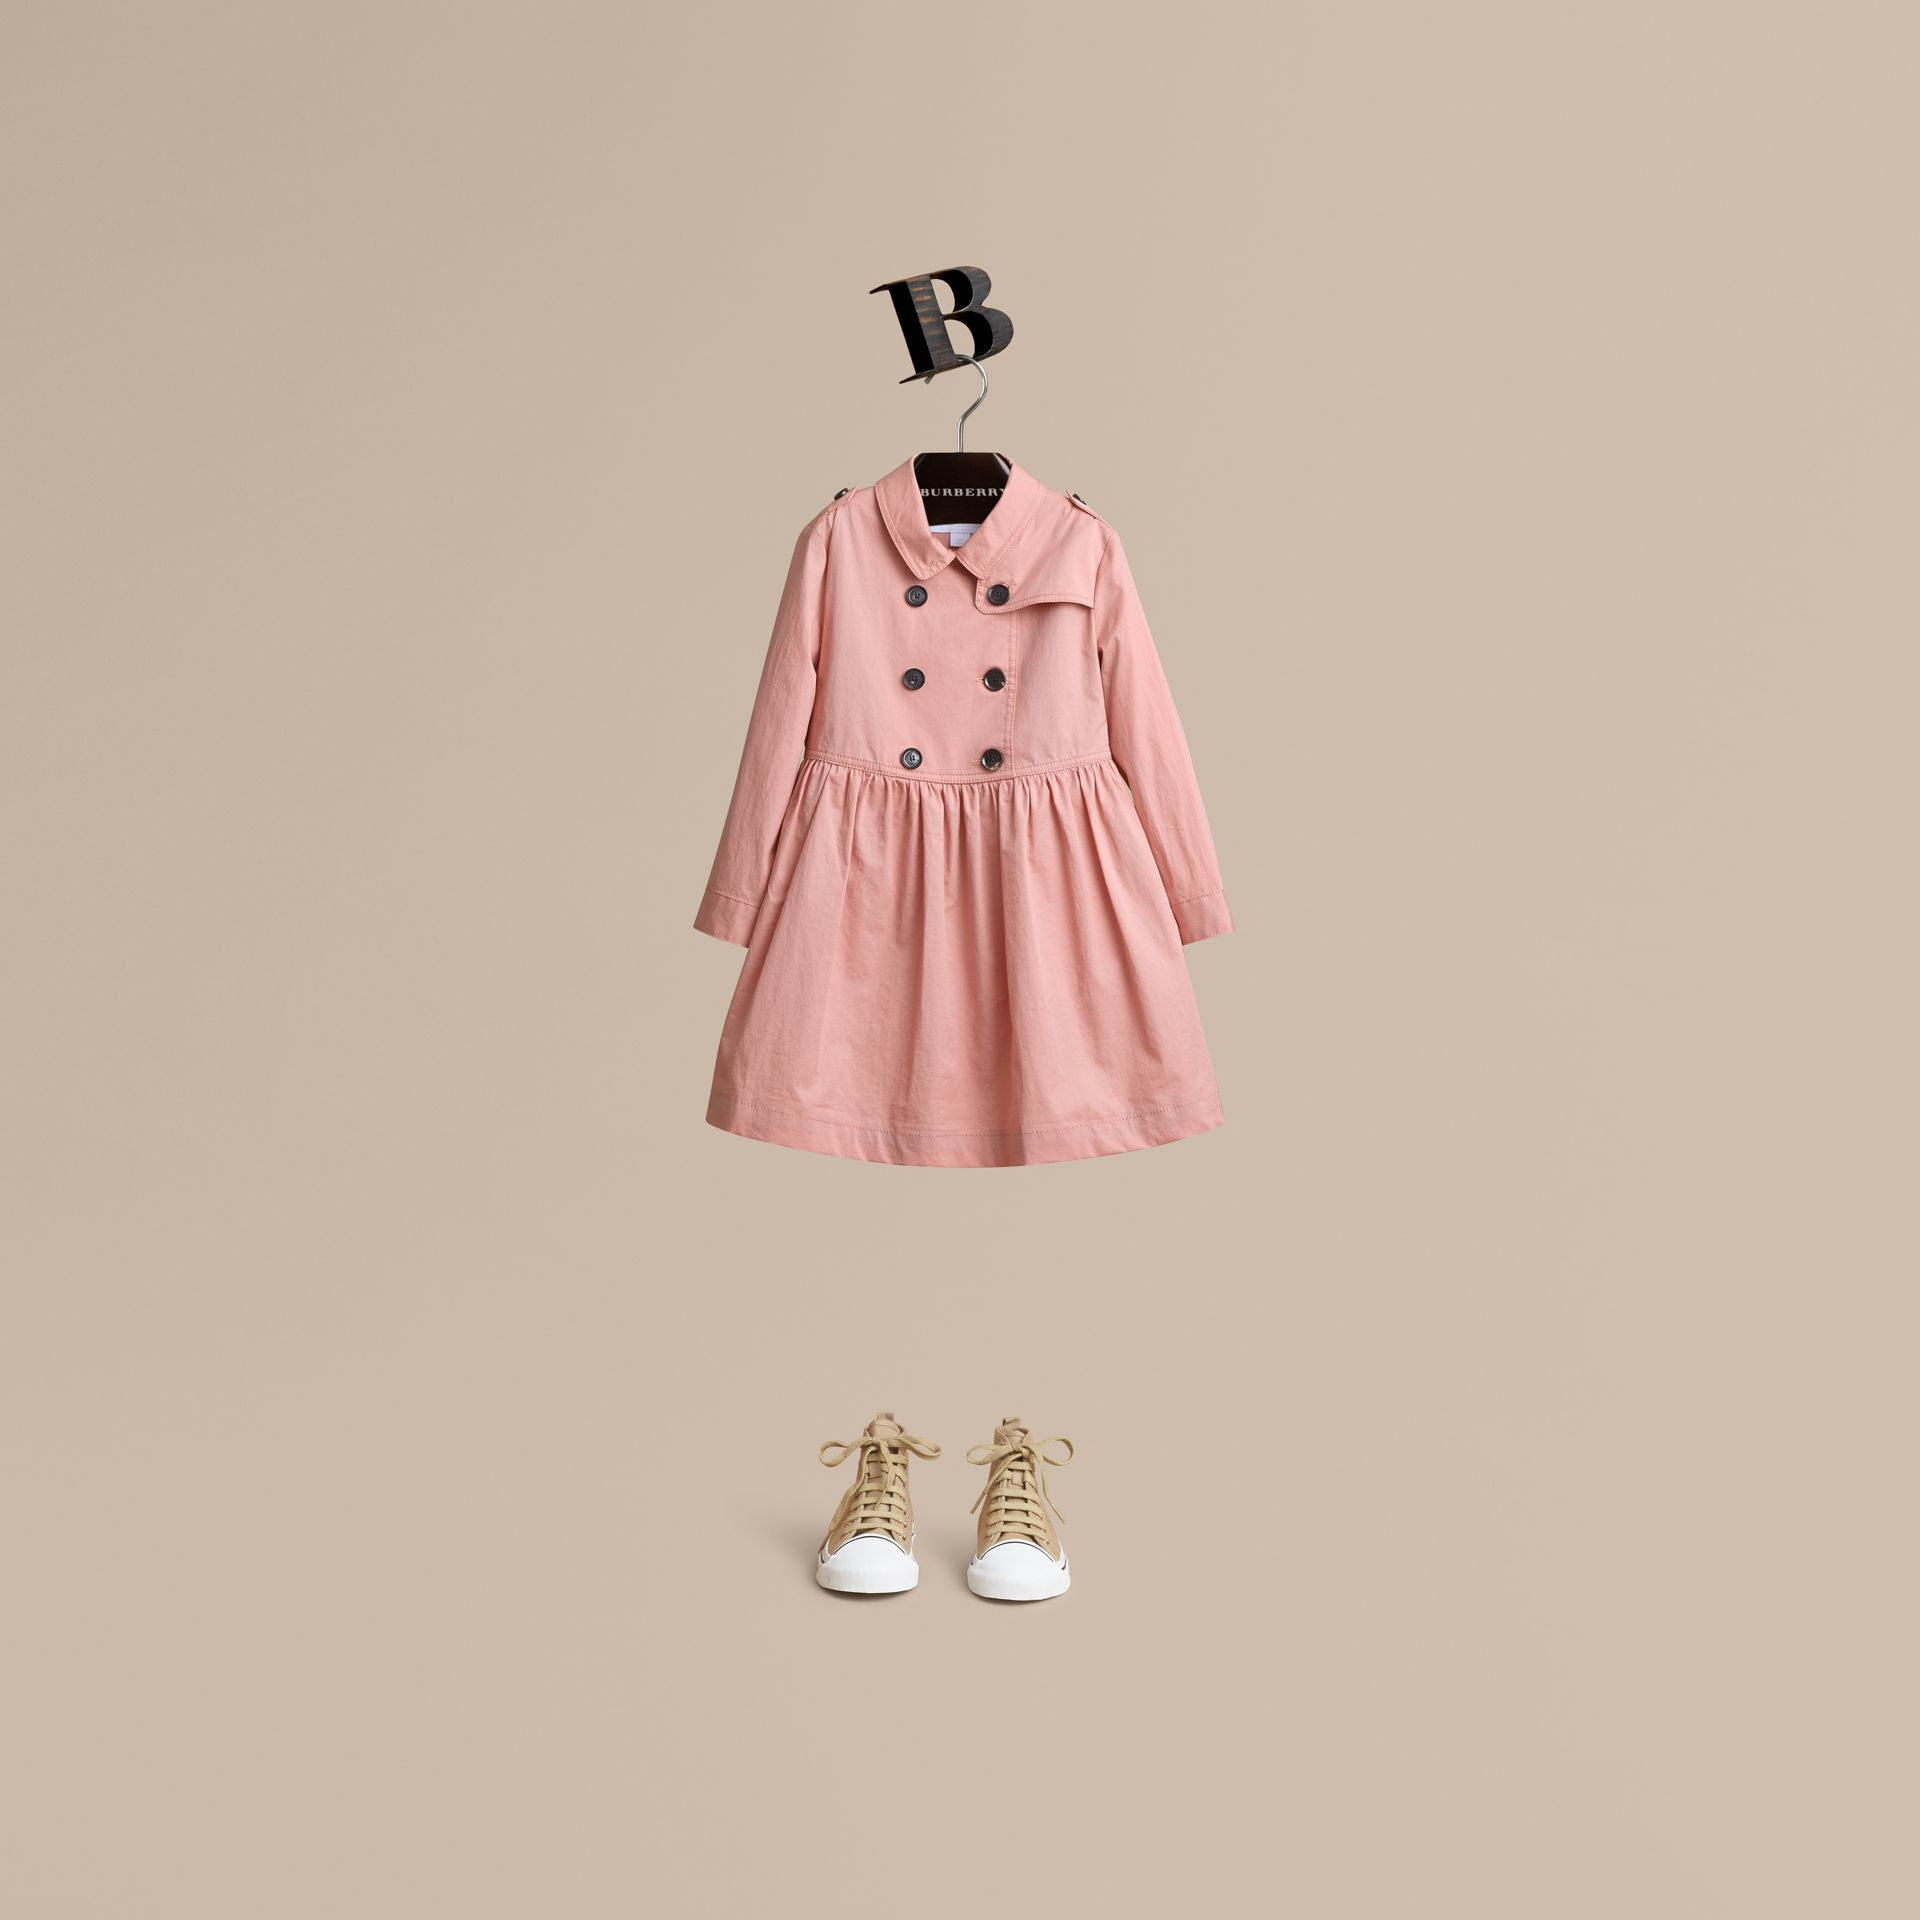 Robe trench en coton extensible avec éléments check (Rose Pâle) | Burberry - photo de la galerie 1